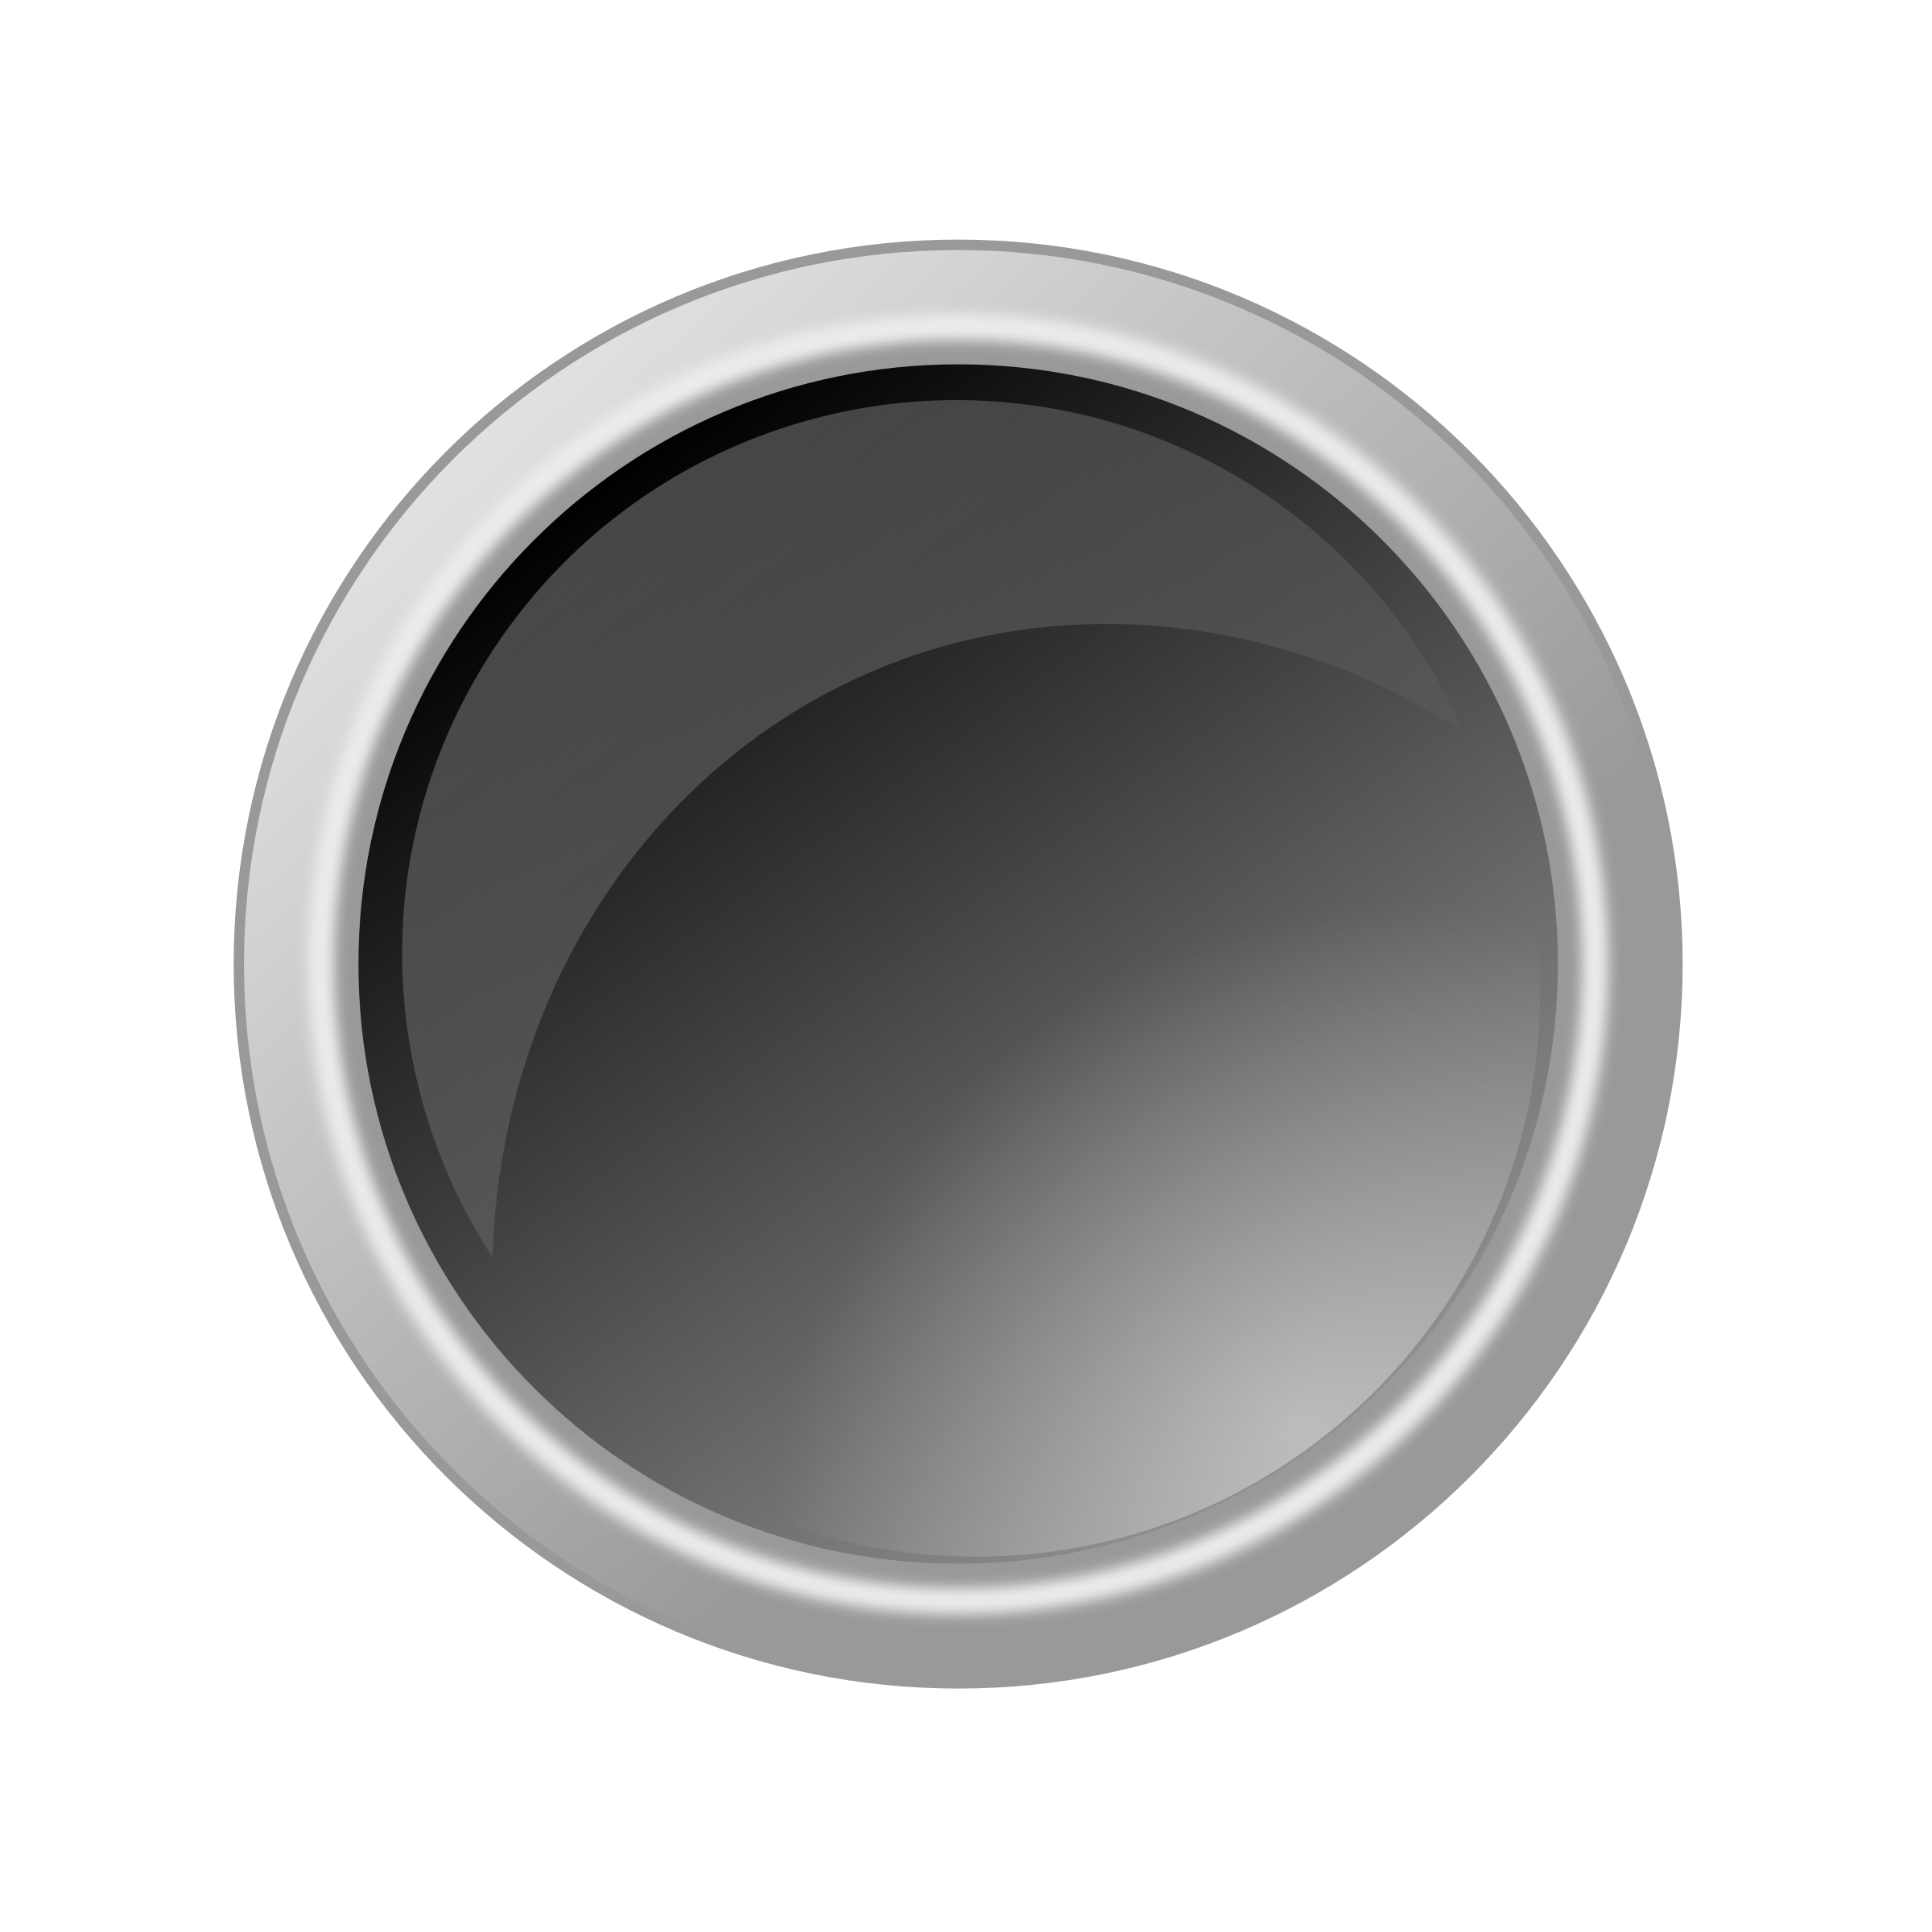 glossy darkgray button by ricardomaia